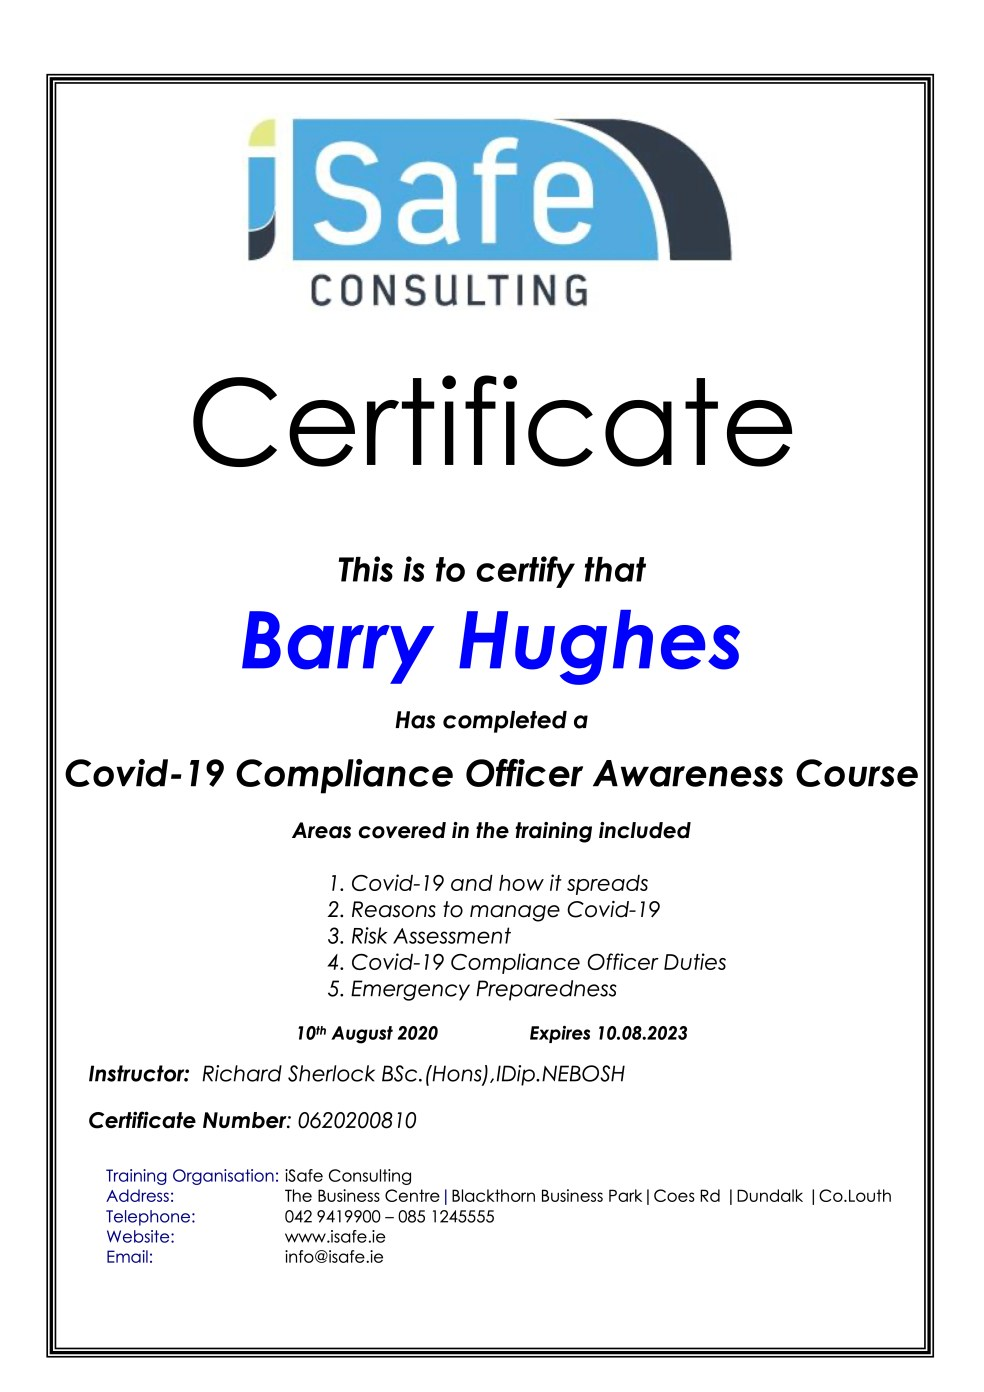 Barry Hughes - Wedding Singer Eire - Covid-19 training.